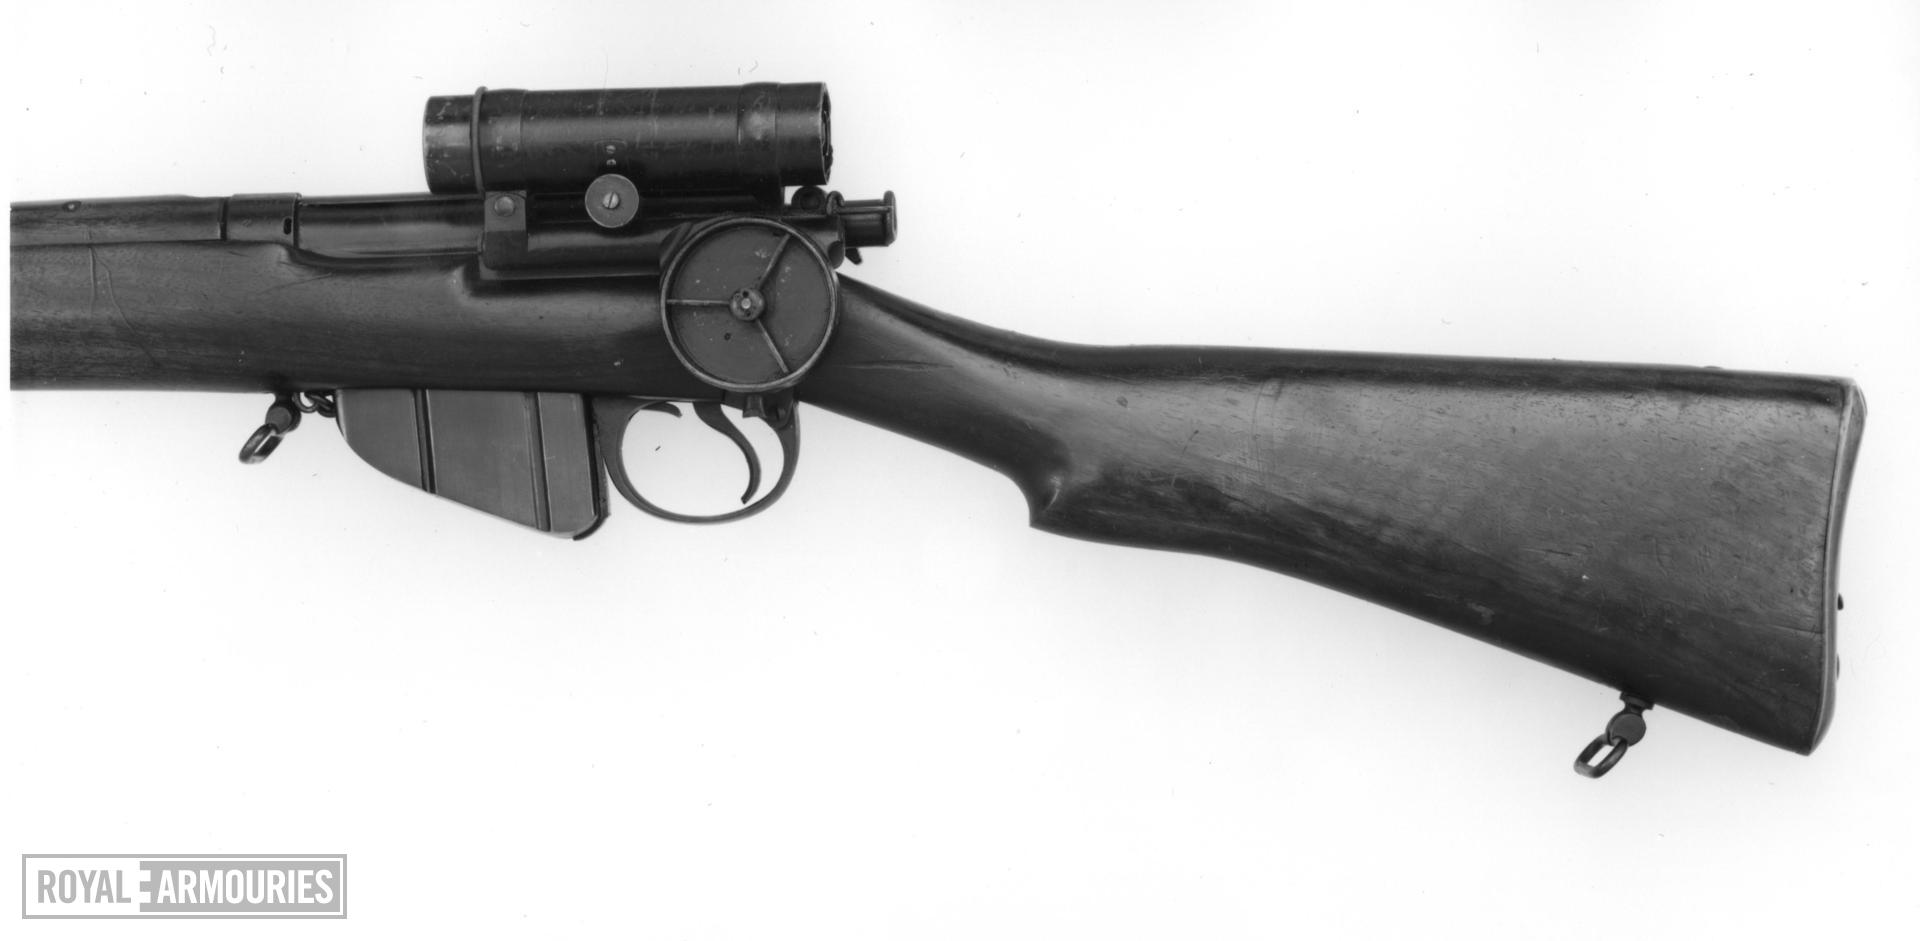 Centrefire bolt-action magazine rifle - Lee-Speed Commercial model by B.S.A Telescopic sight by A.A. Common (patented)